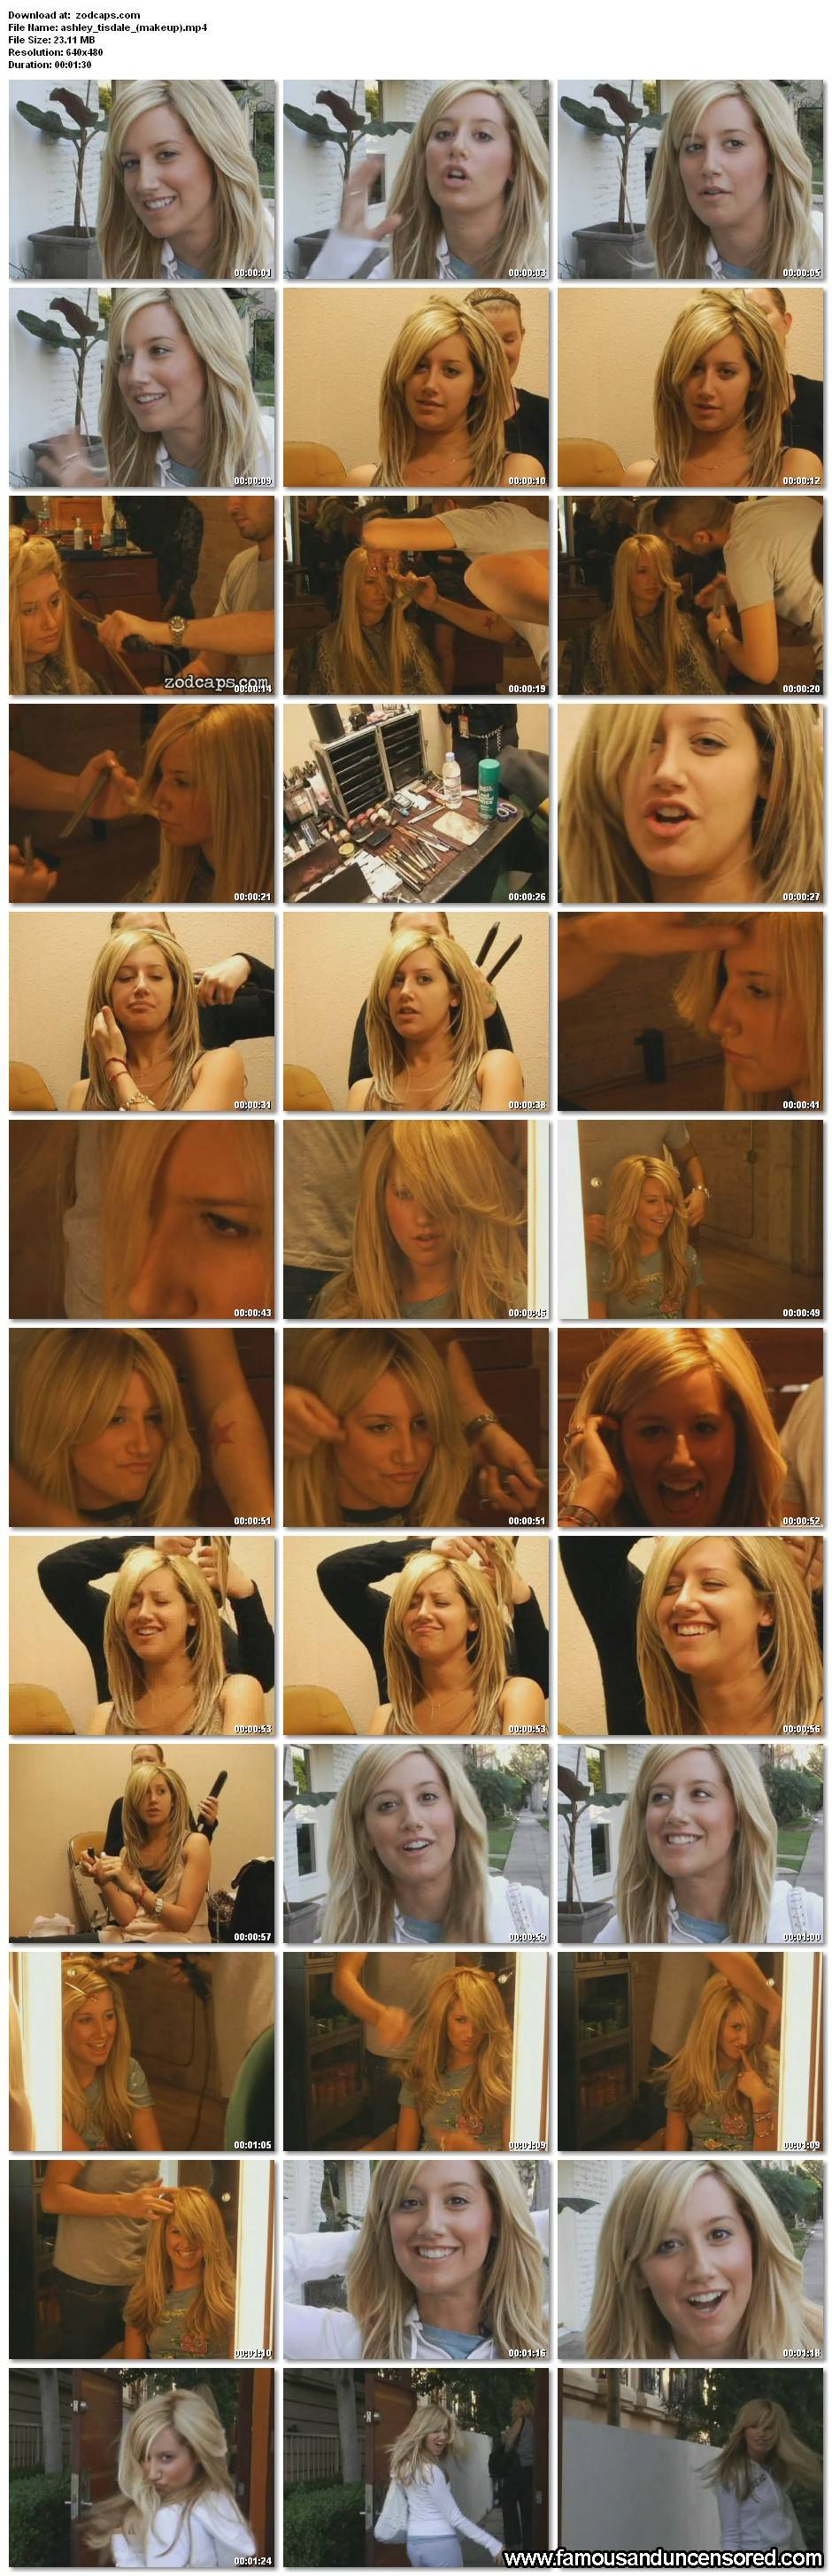 Remarkable, very Photos of ashley tisdale naked pink vagima opinion you